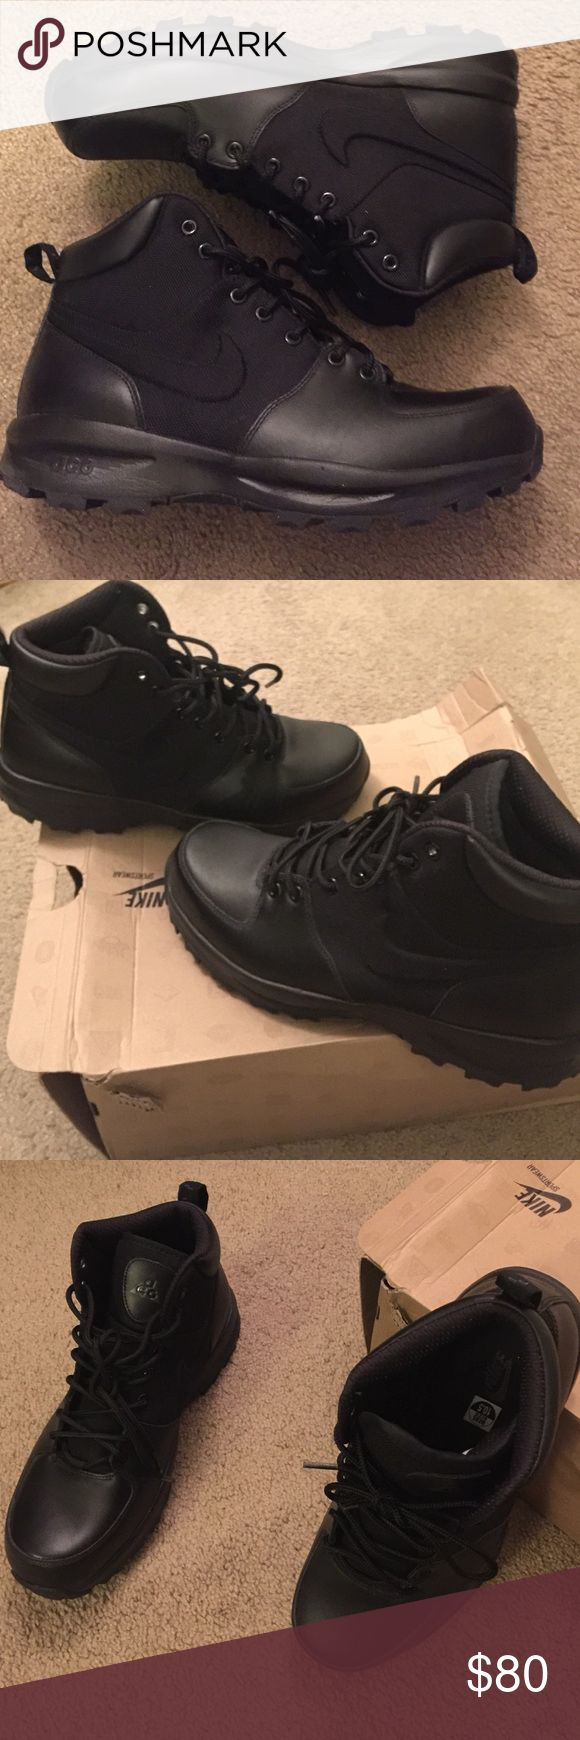 $10off Today only was $85 Nike Manoa Boots (ACG) Will change price if you want them ... All black Nike boots worn once in NEW!!! condition. No trades Nike Shoes Boots